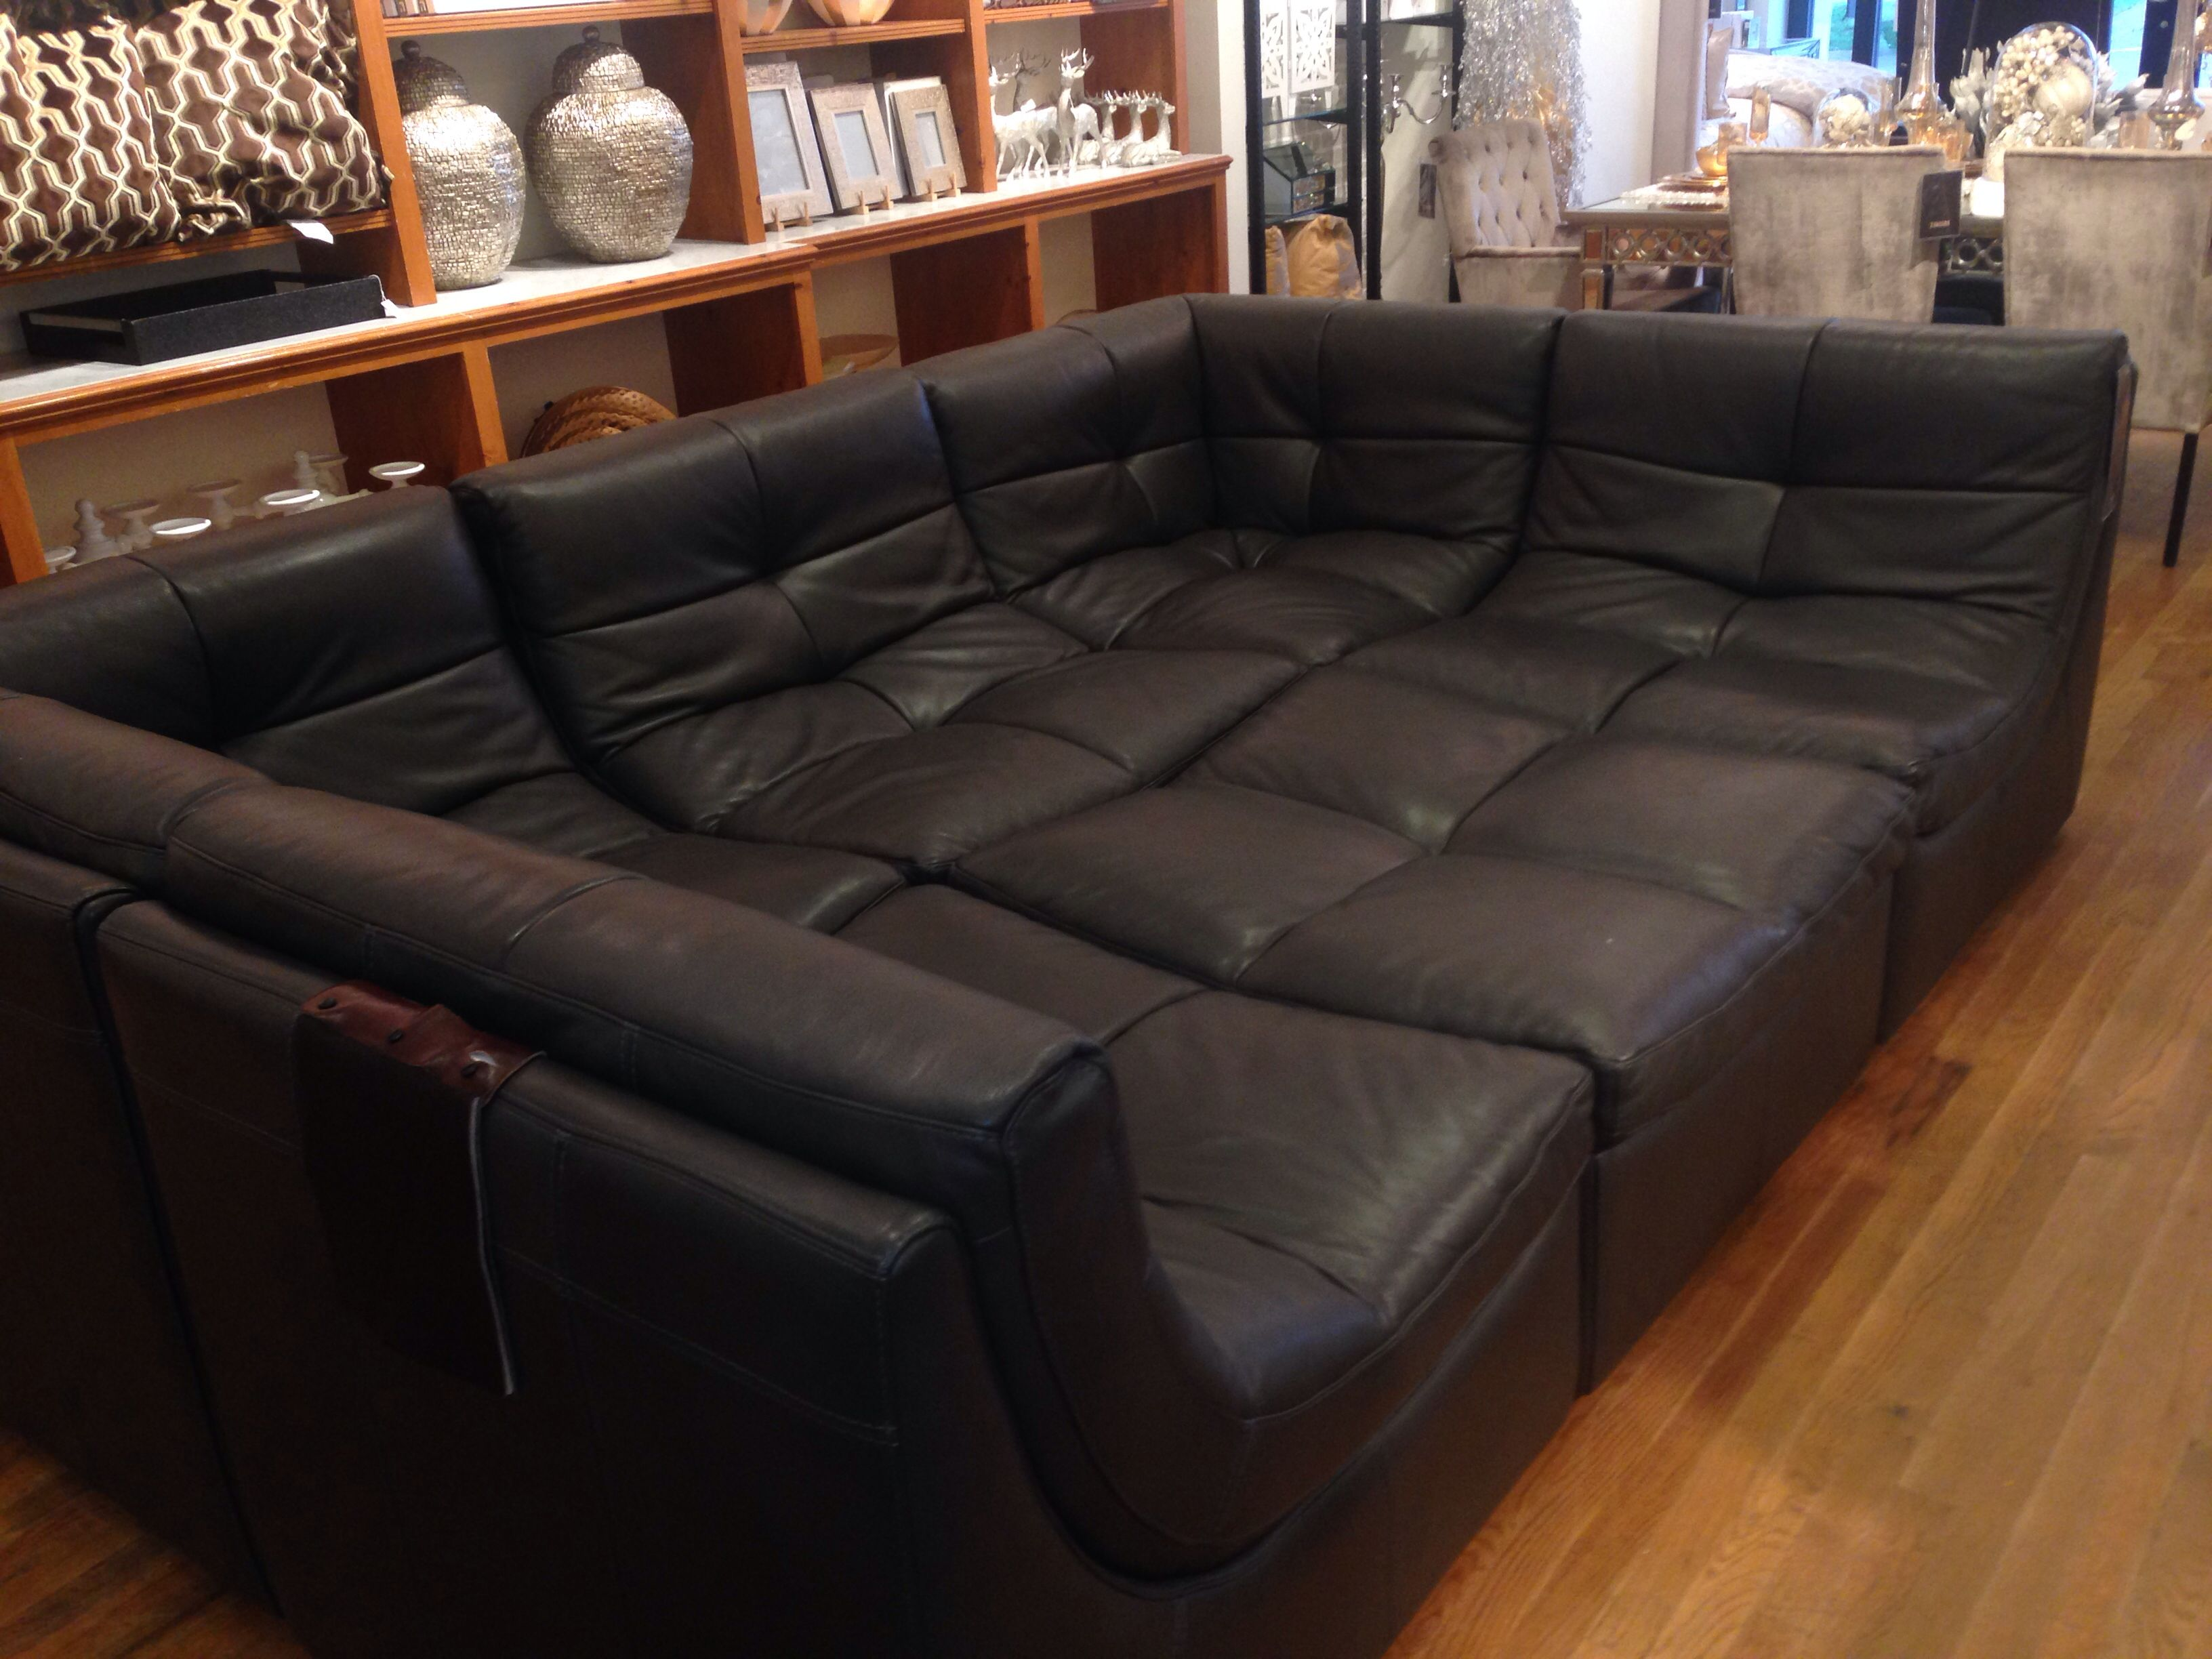 Large Couch Large Sectional Sofa Sofa Furniture Sofa